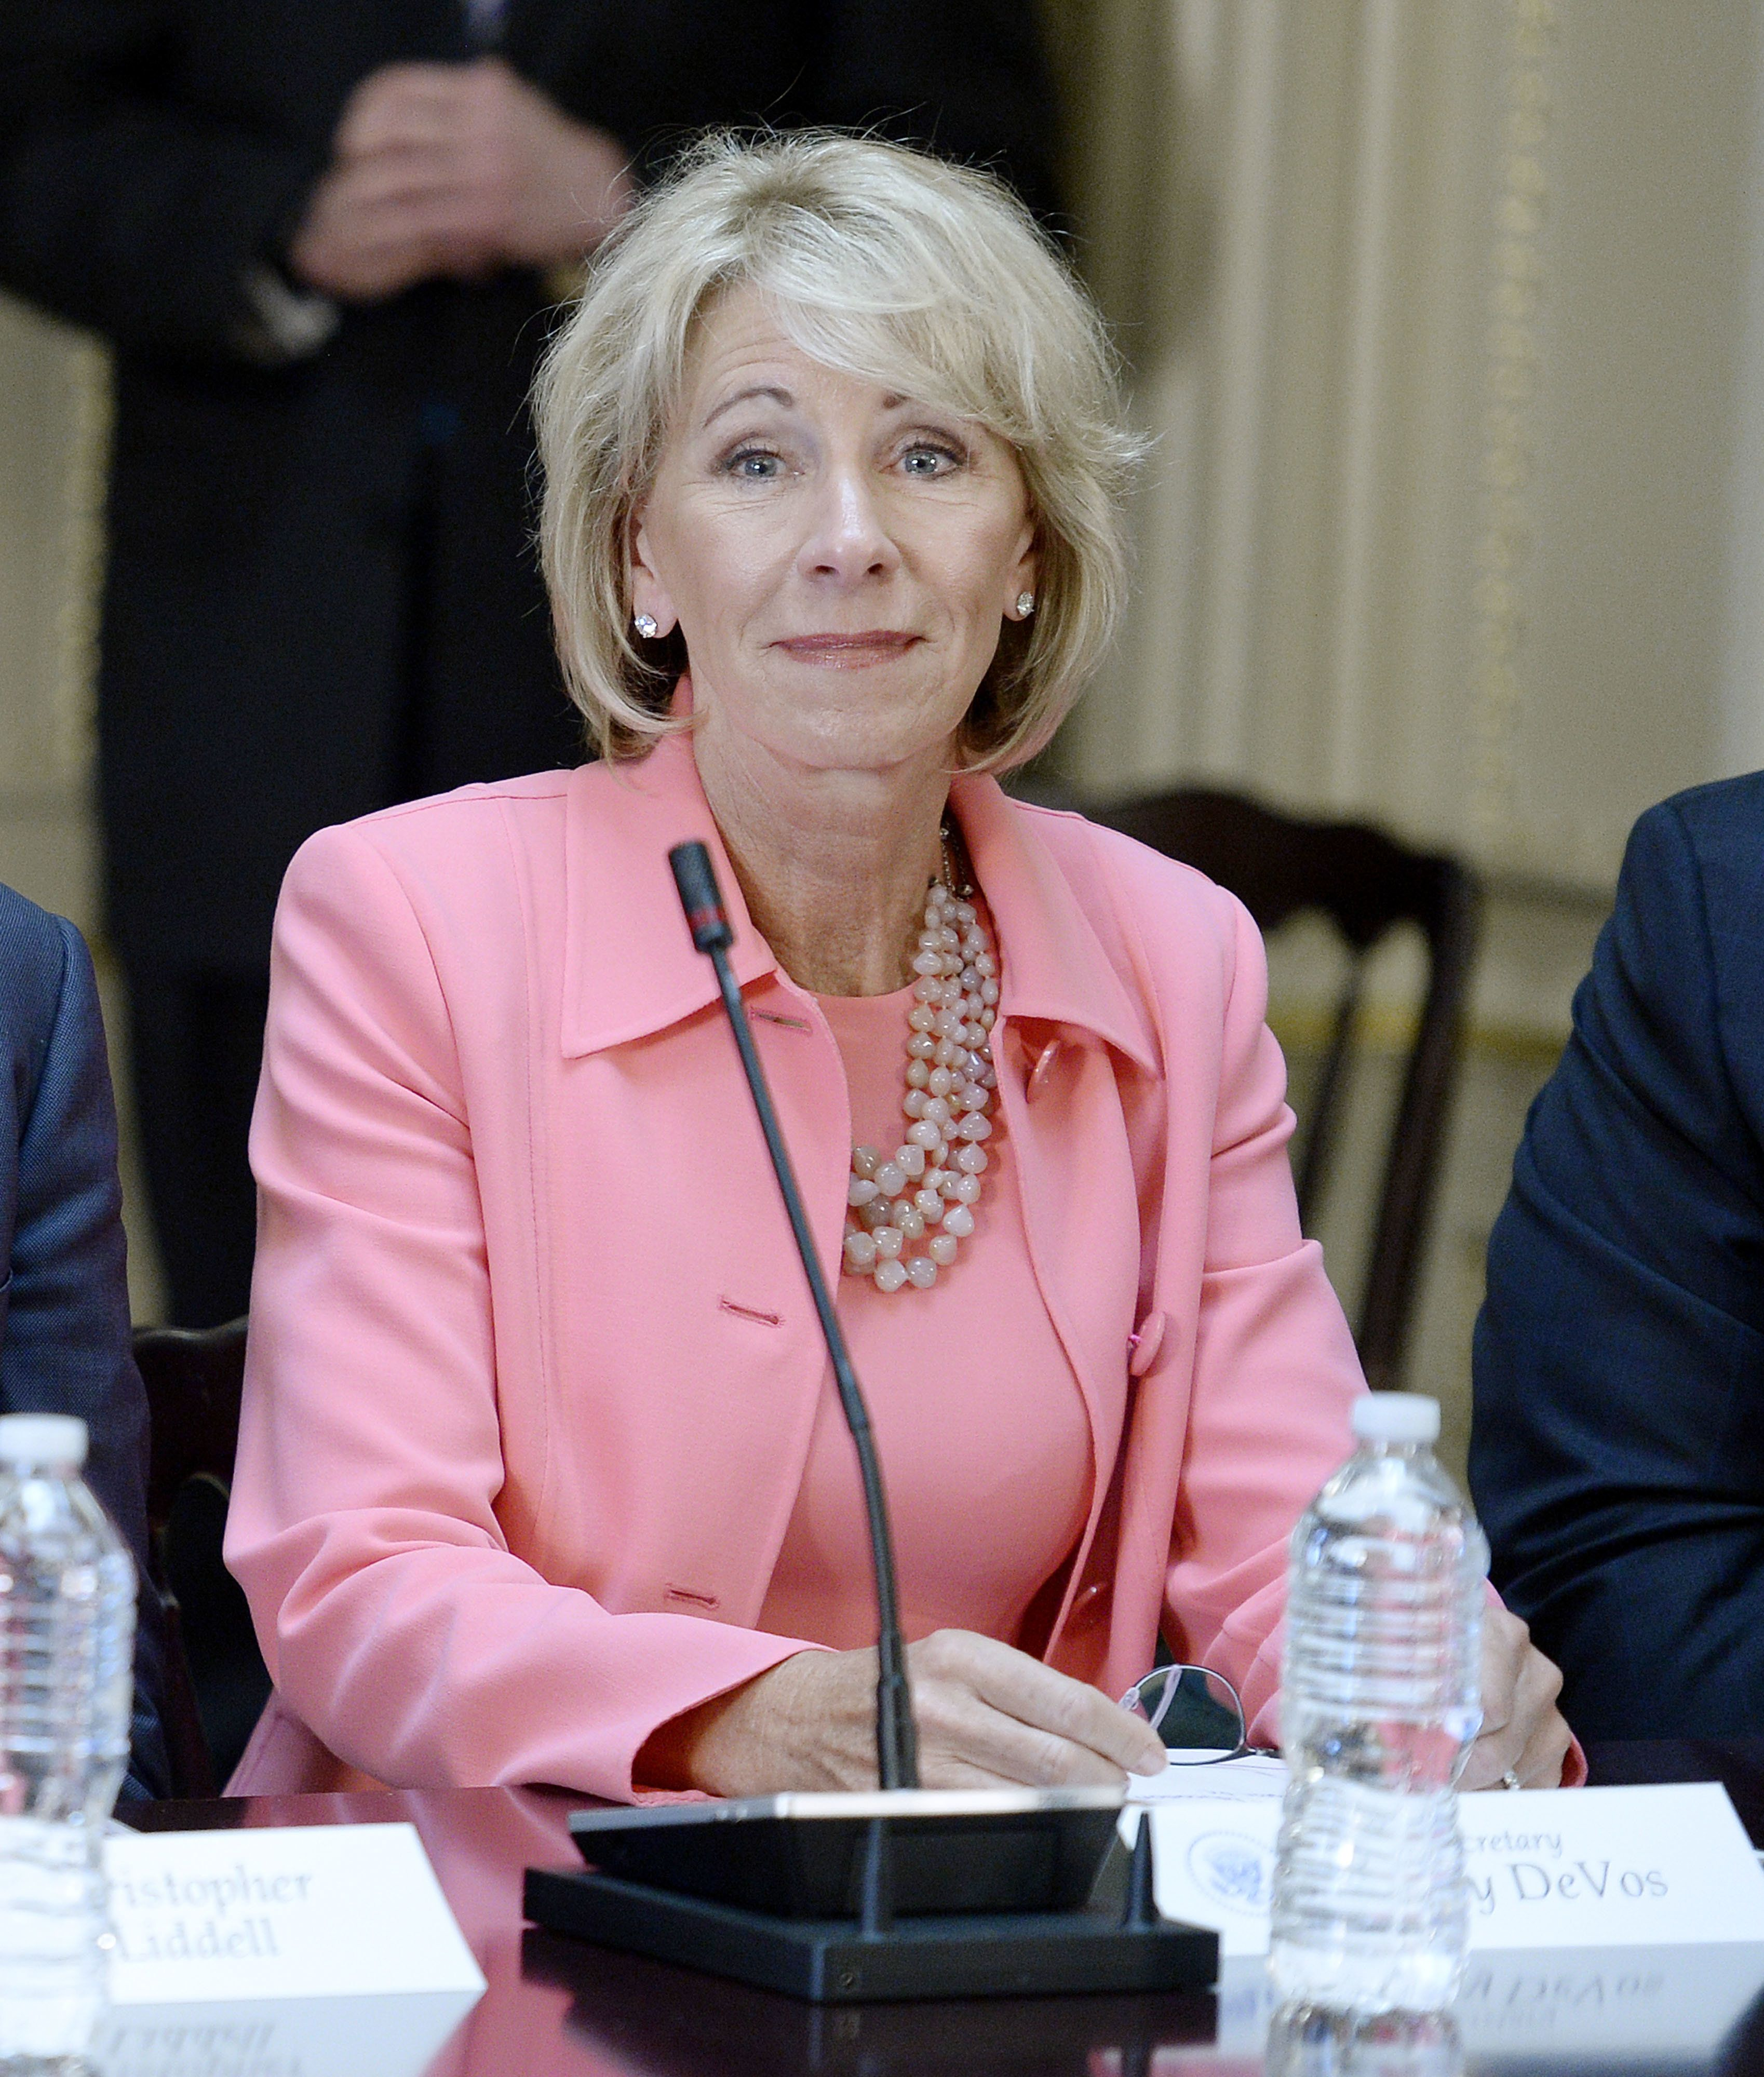 Betsy DeVos, U.S. secretary of education, listens during a strategic and policy discussion with U.S. President Donald Trump, not pictured, and executives at the White House in Washington, D.C., U.S., on Tuesday, April 11, 2017. The Trump administration has been hobbled by botched policy roll-outs and an early failure on another signature promise -- health-care reform -- and it remains to be seen whether Trump's infrastructure pledges can translate to a permanent boost for business. Photographer: Olivier Douliery/Pool via Bloomberg